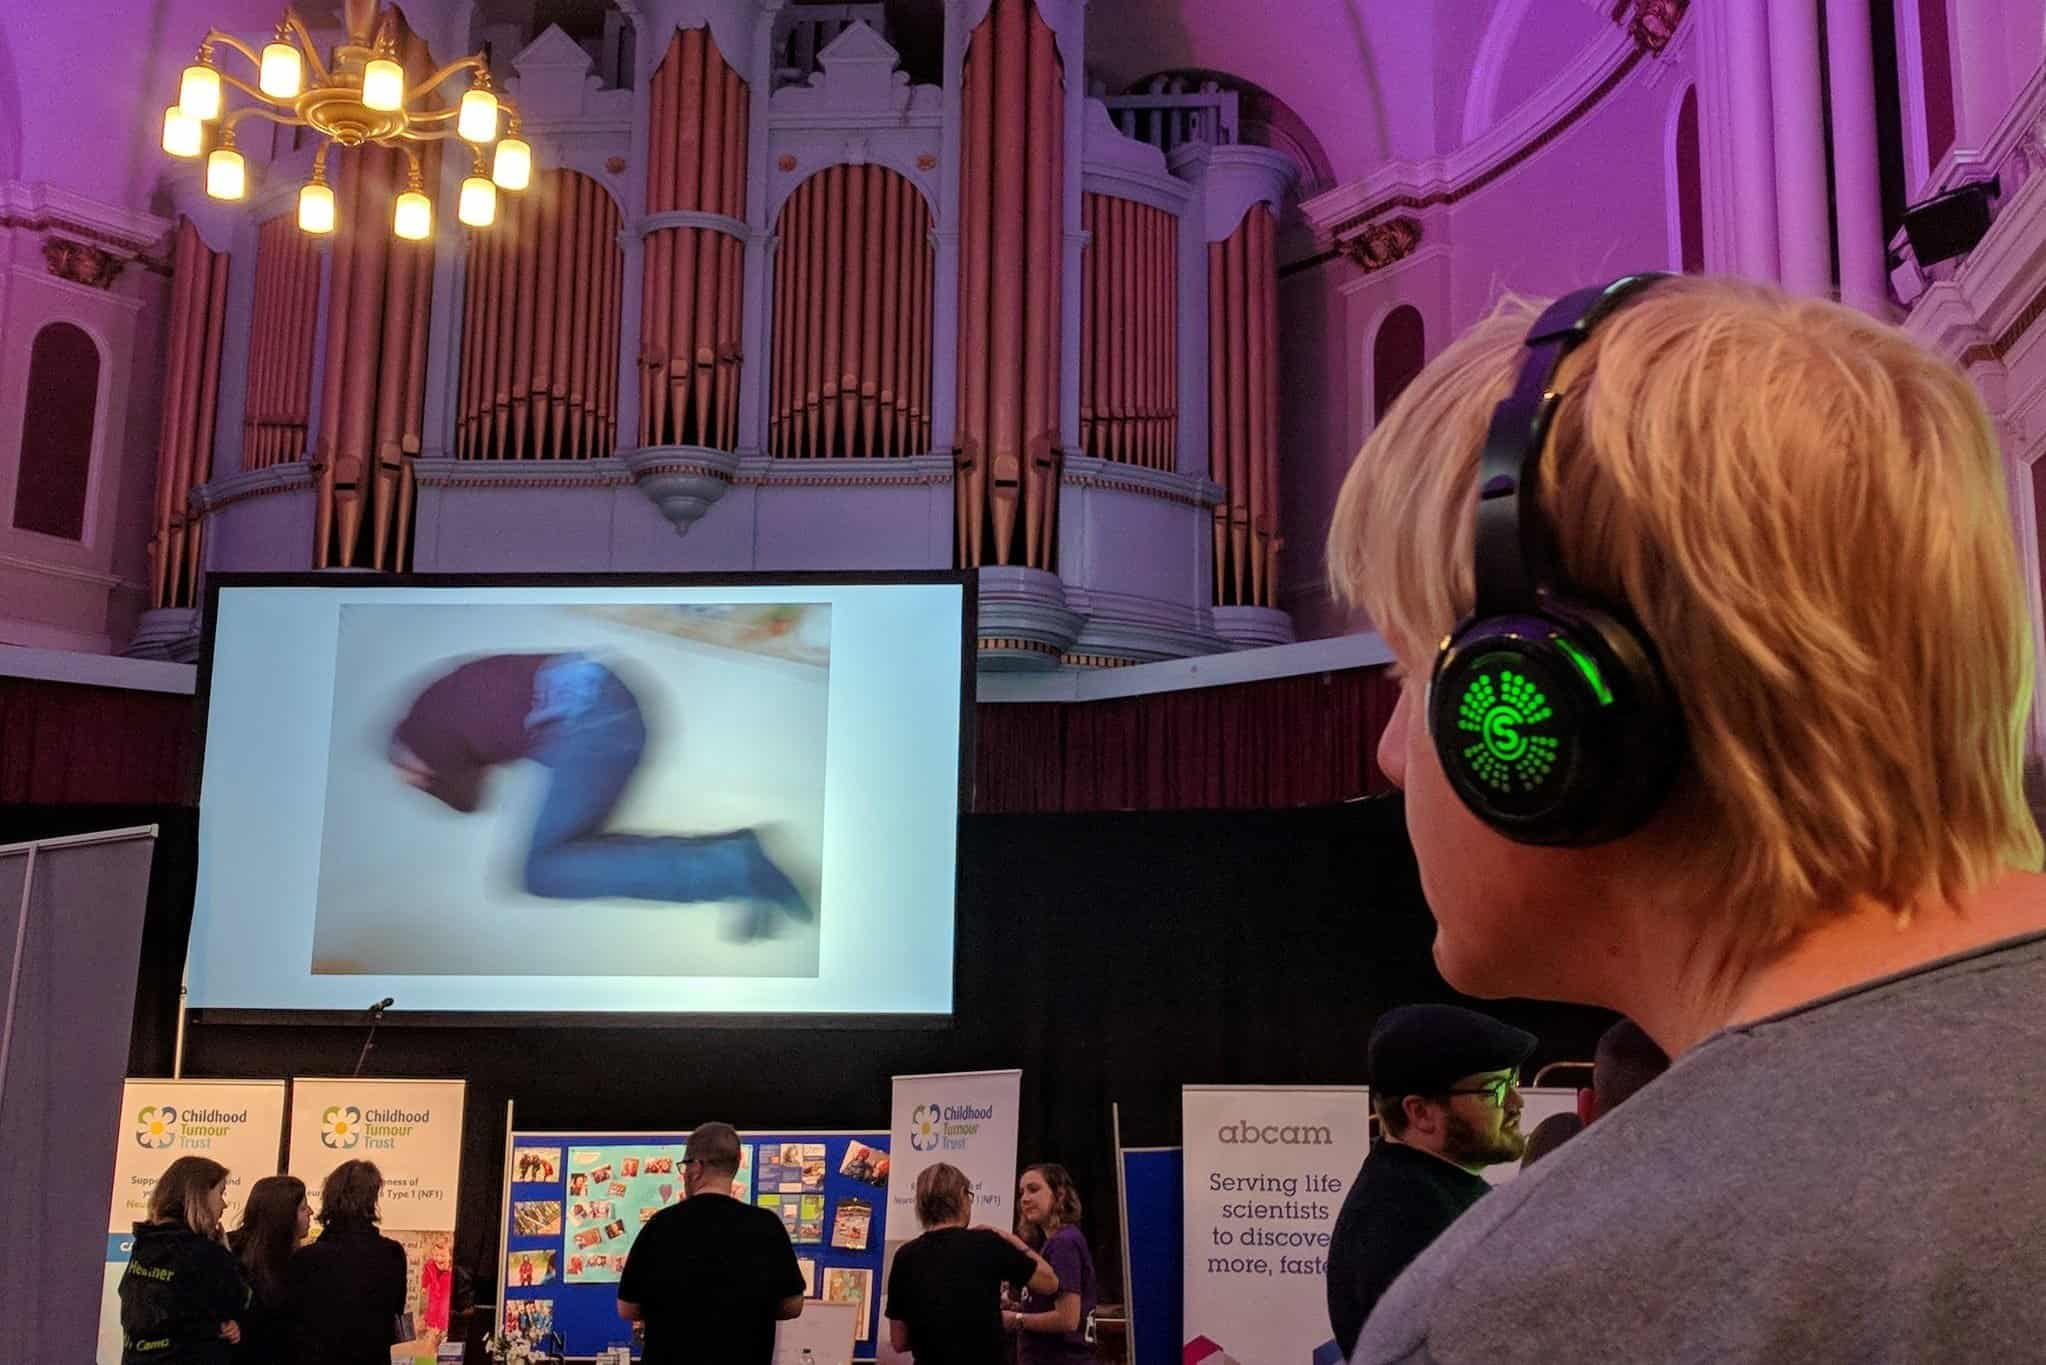 Film fest and accessible tech credit Neale Upstone